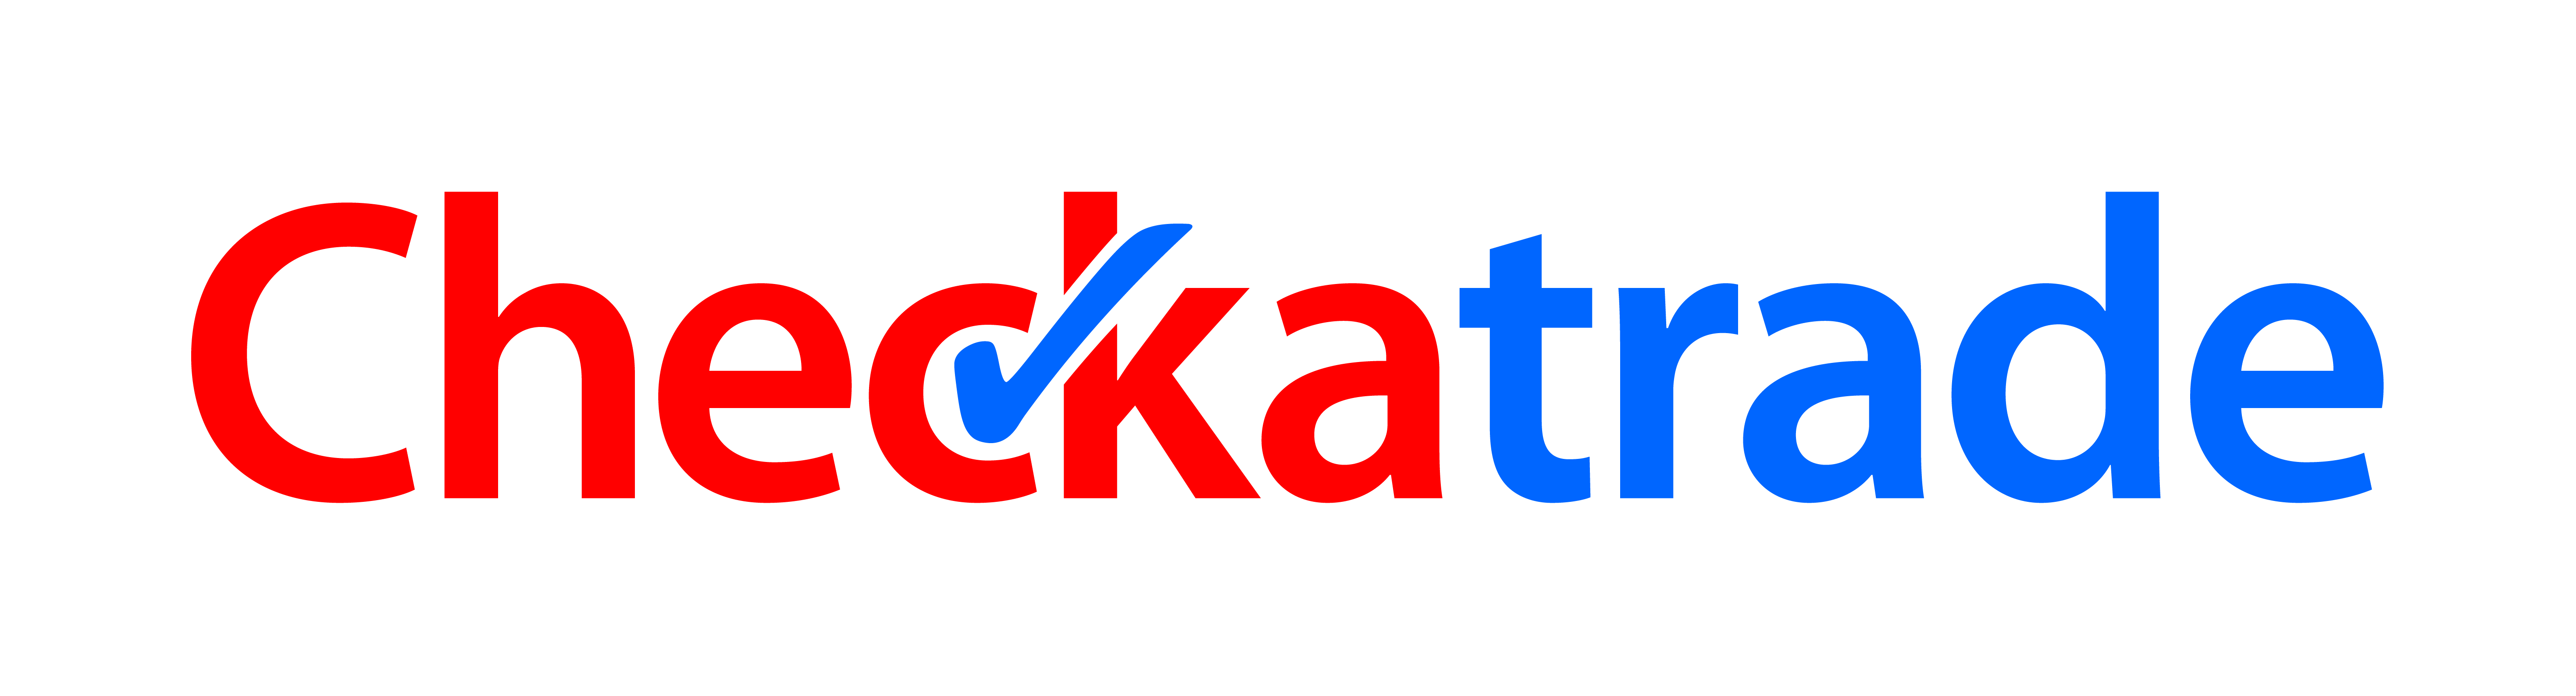 Checkatrade information for